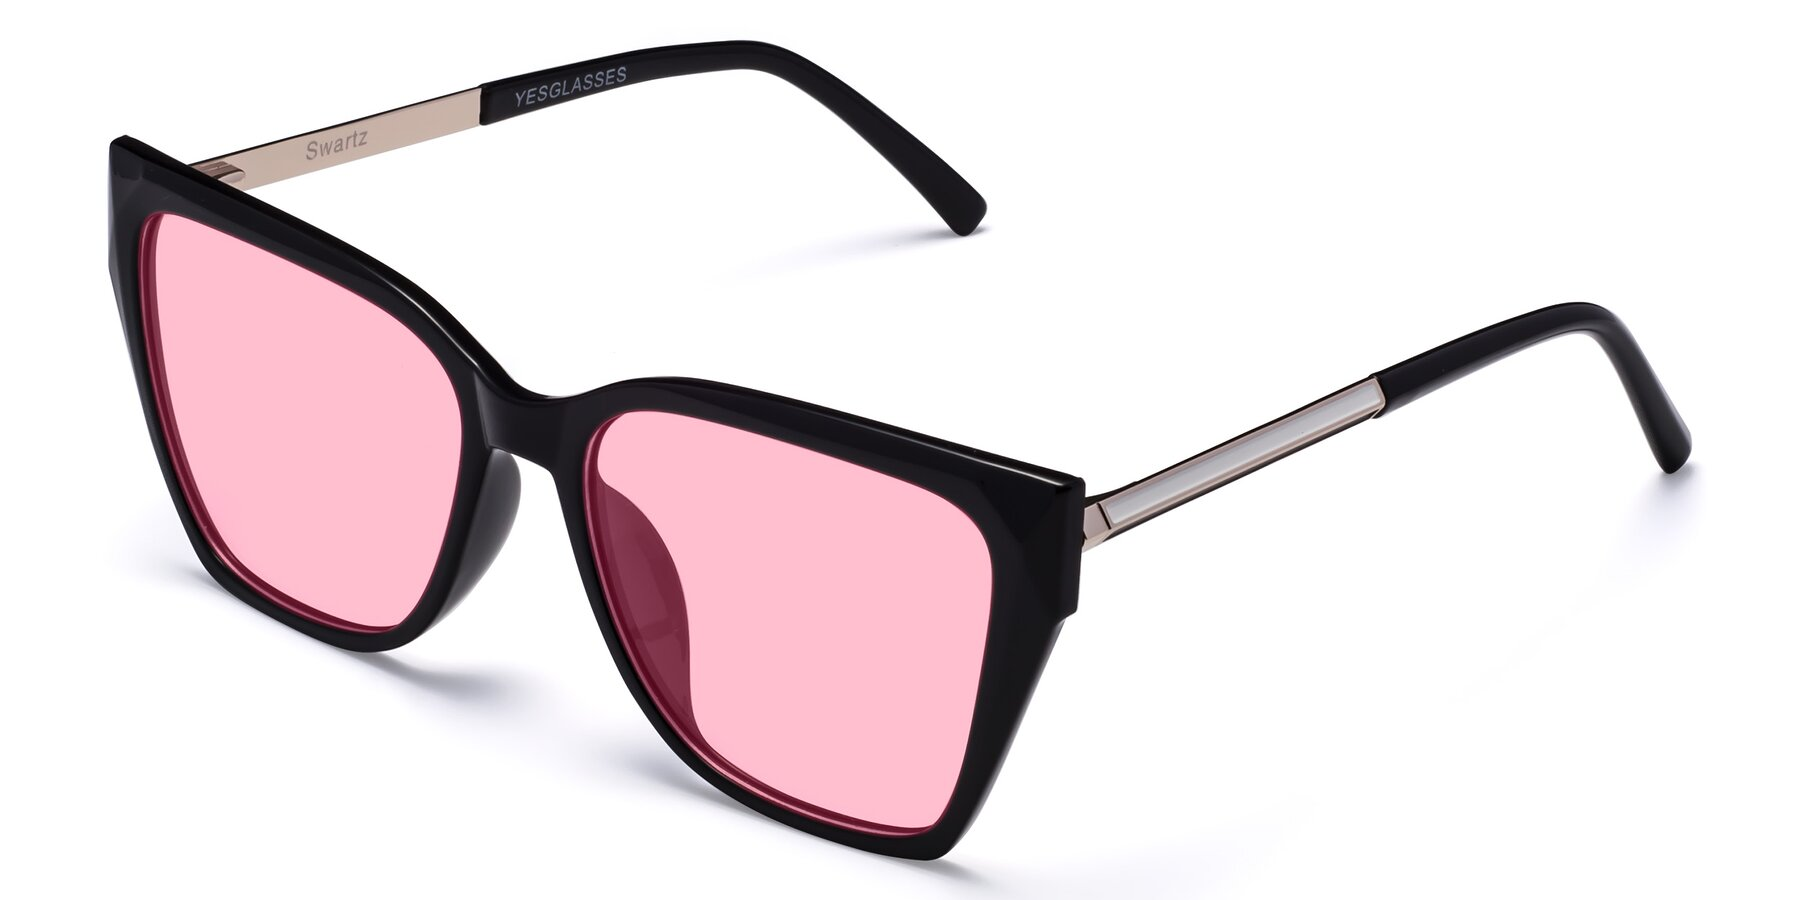 Angle of Swartz in Black with Medium Pink Tinted Lenses